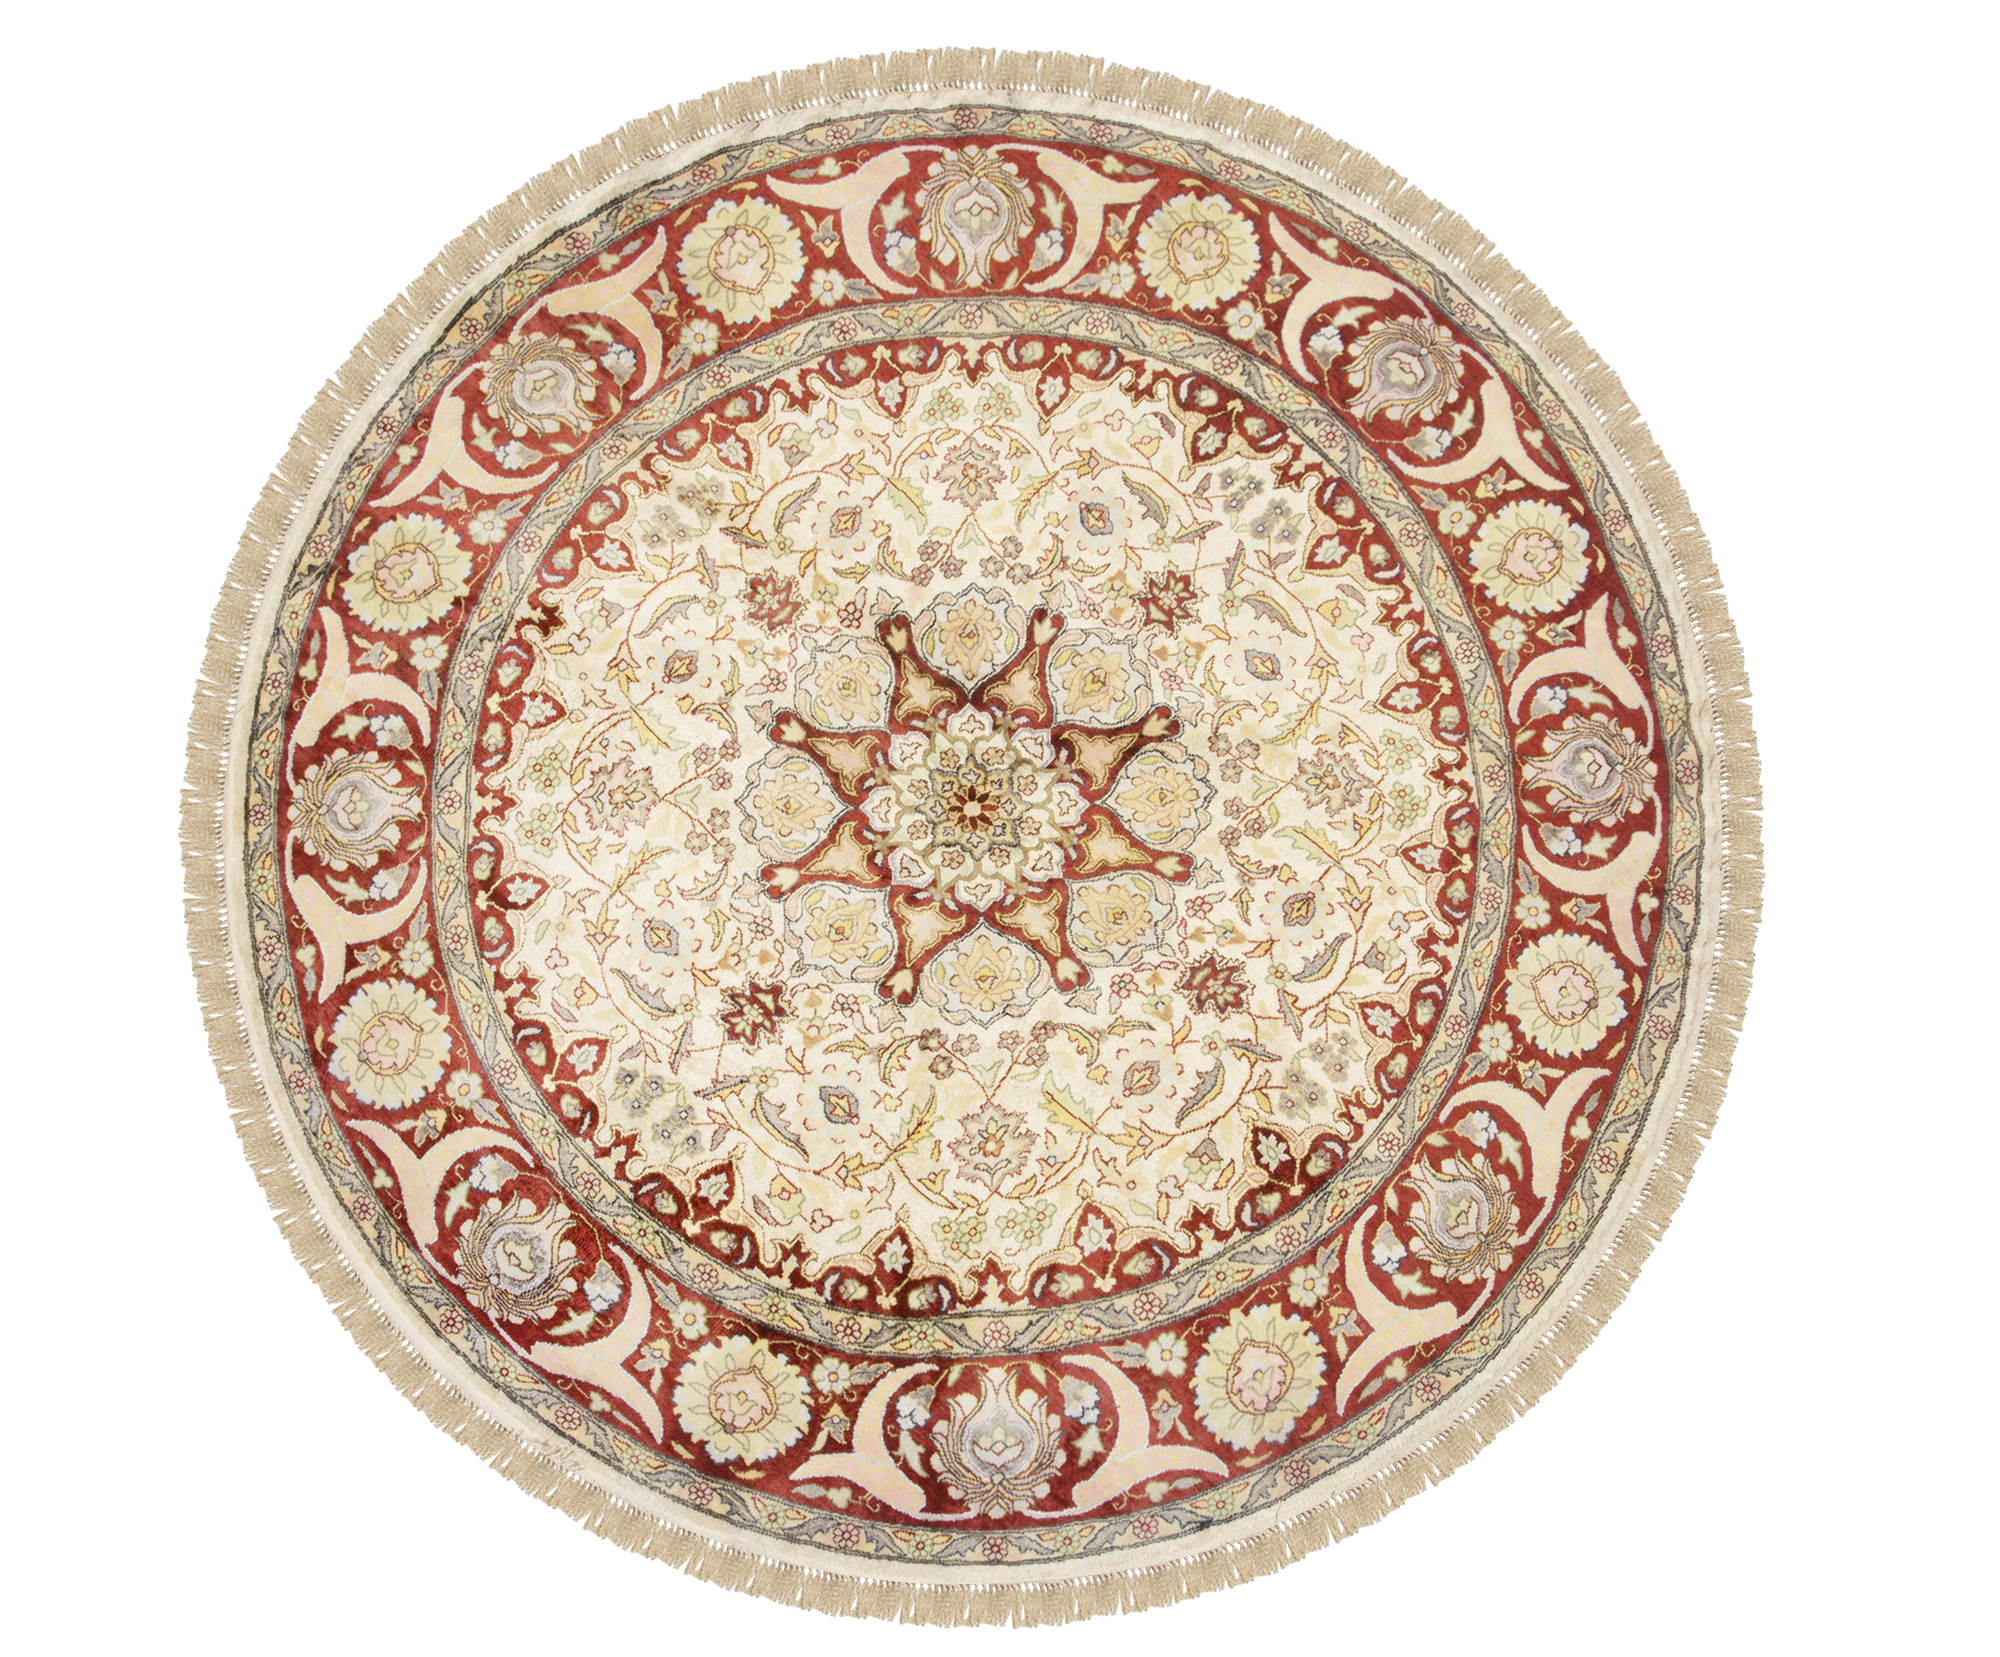 carpet rug png image collection download #27285